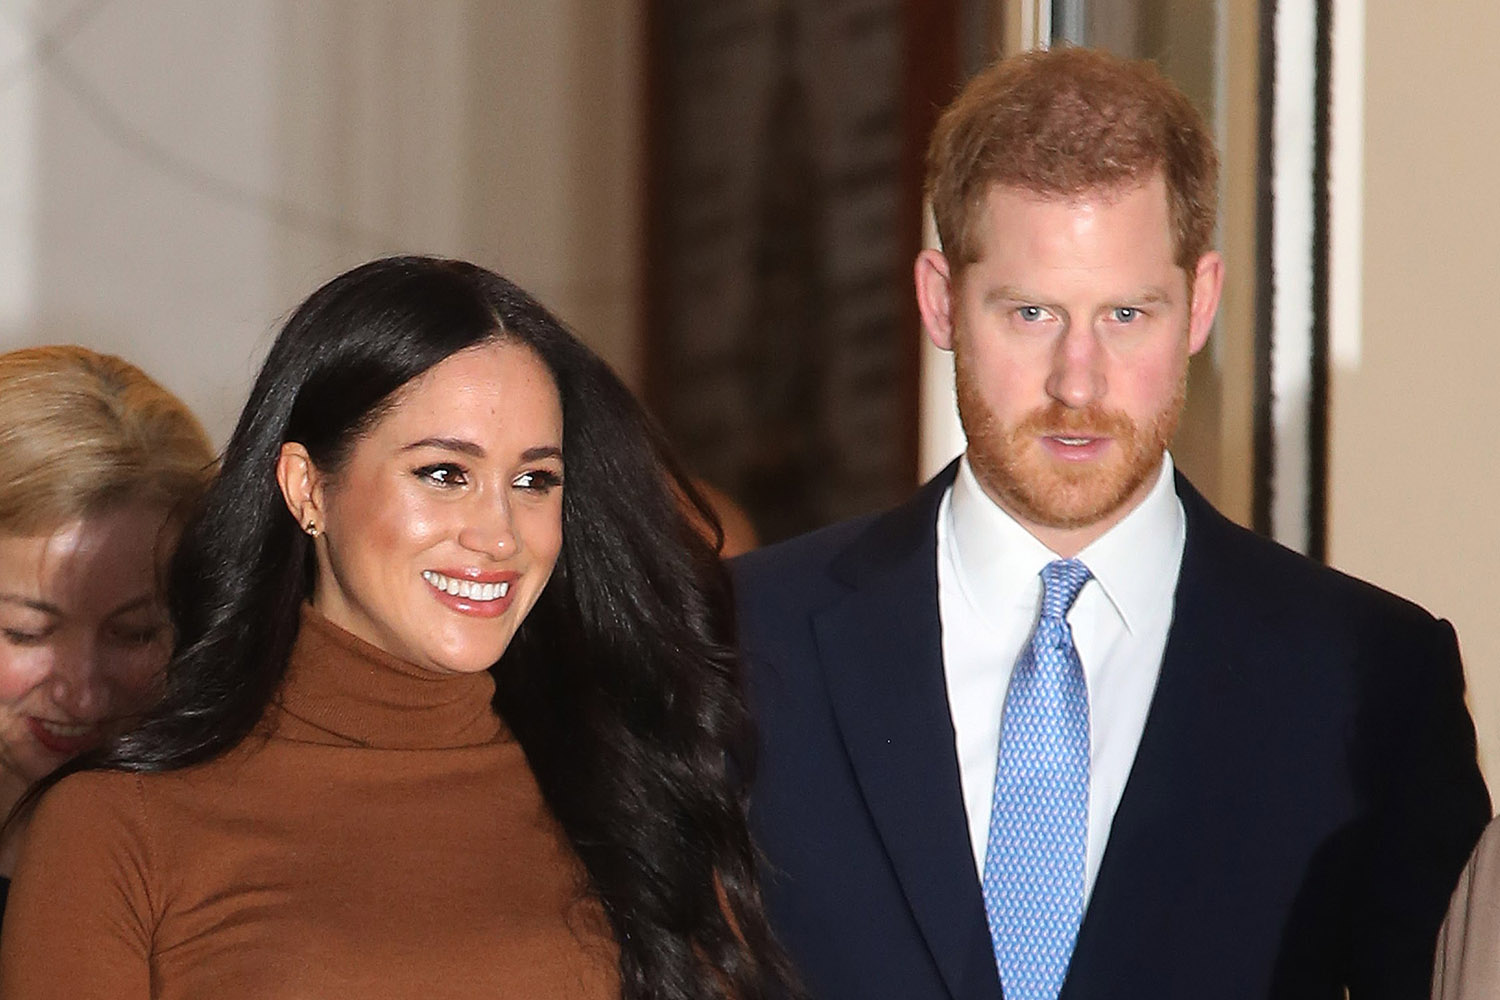 Meghan and Harry 'will renew vows in intimate ceremony in Hollywood'